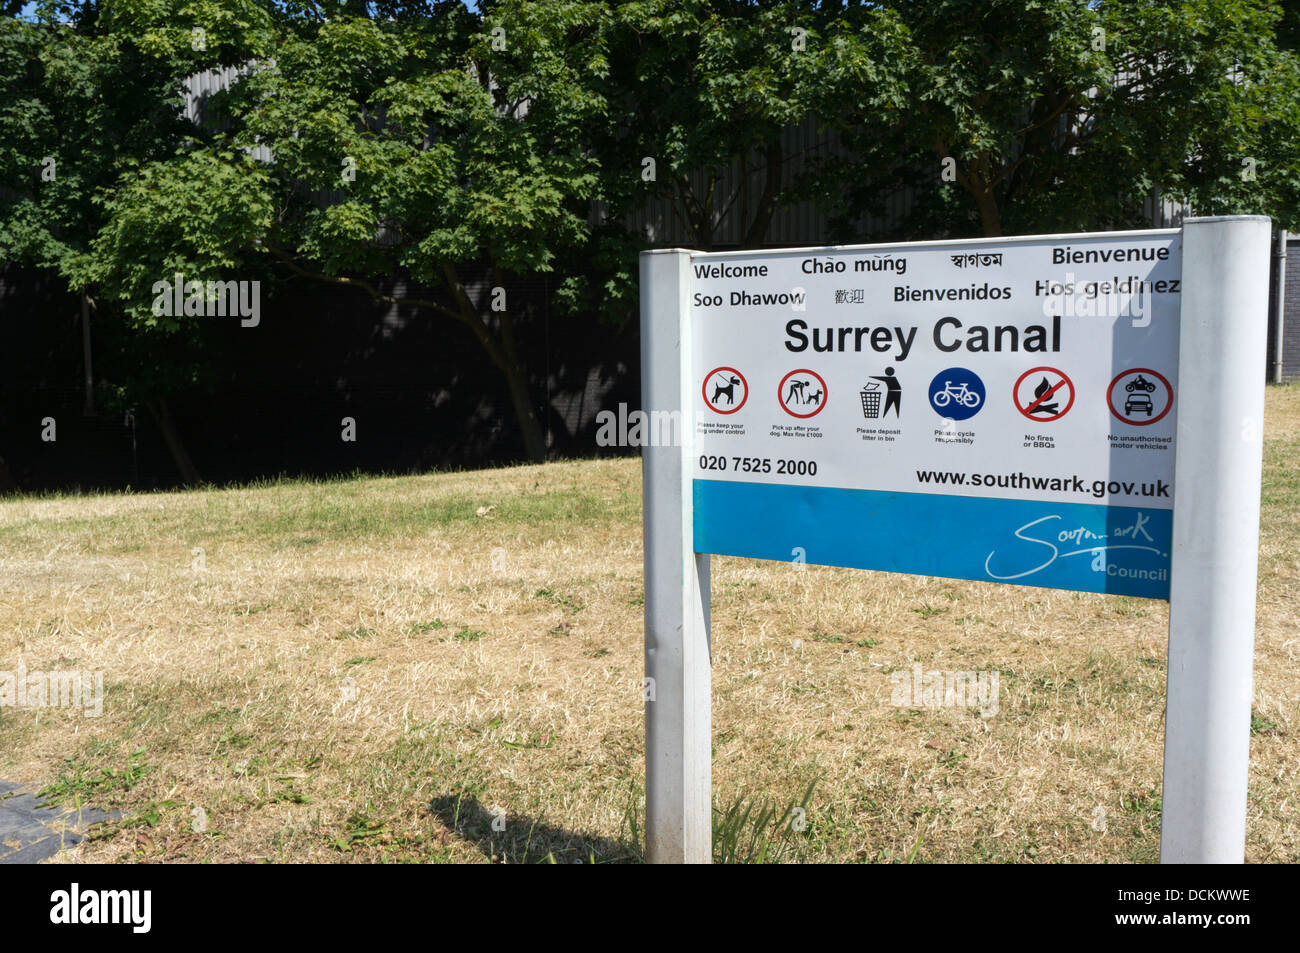 A multilingual sign for the Surrey Canal Linear Park at Peckham in south London. - Stock Image